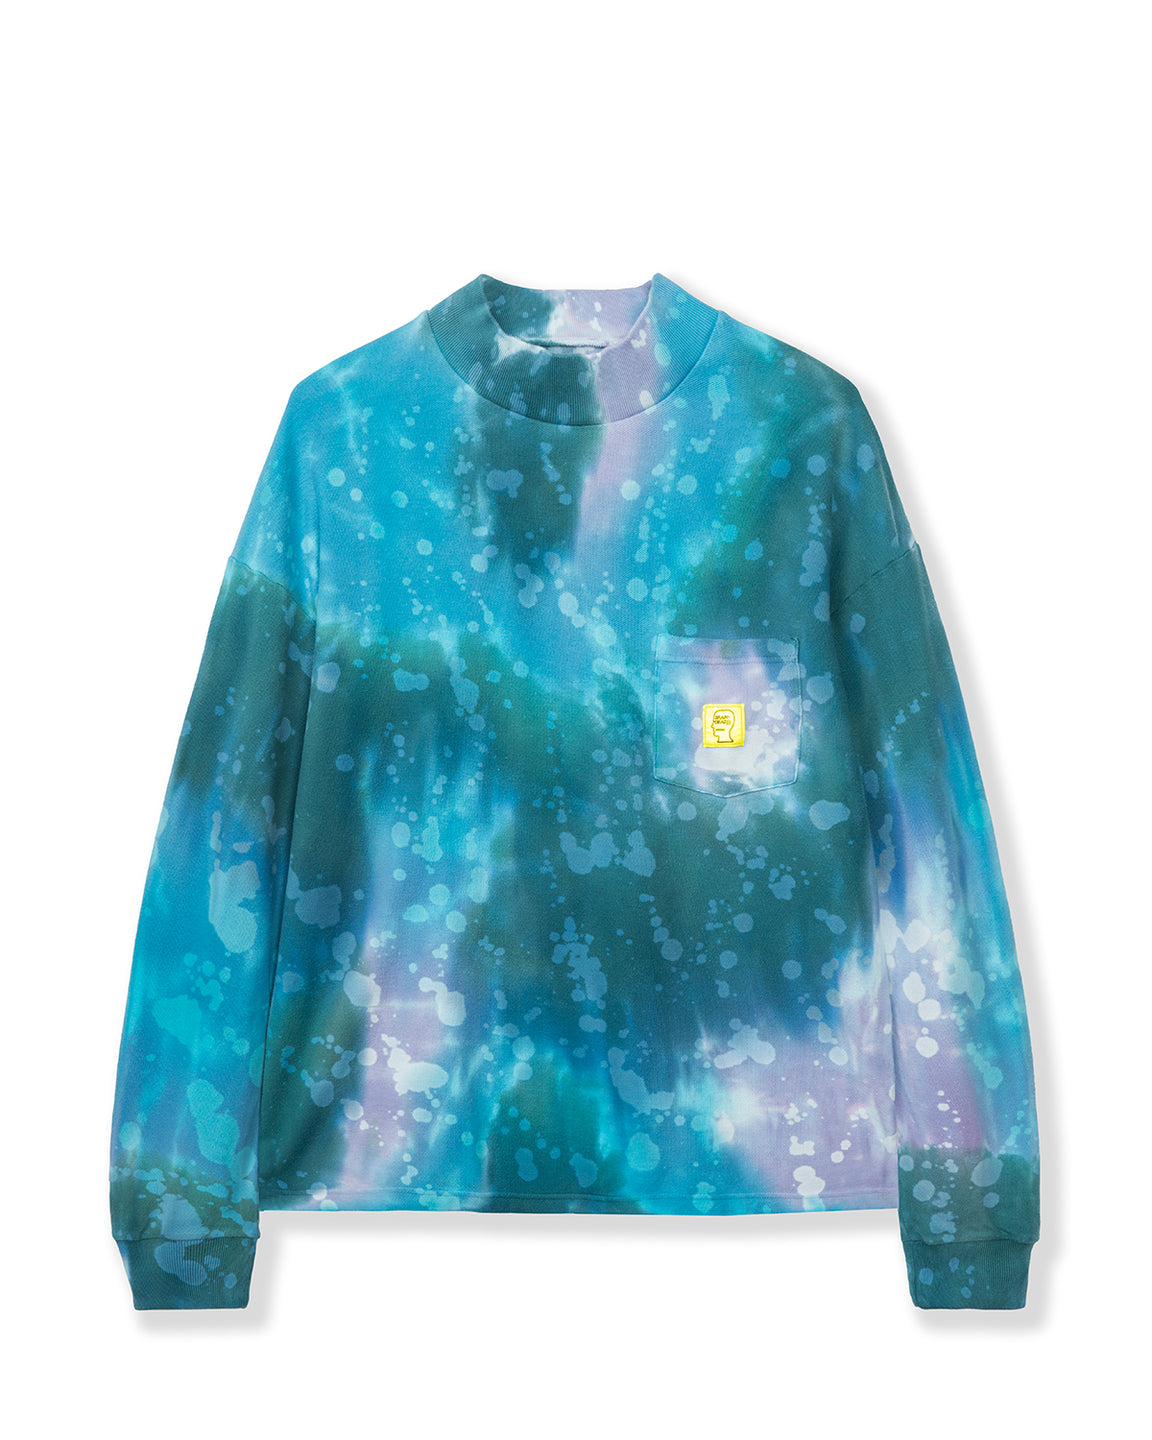 Dyed Pique Mock Neck Long Sleeve - Blue/Multi